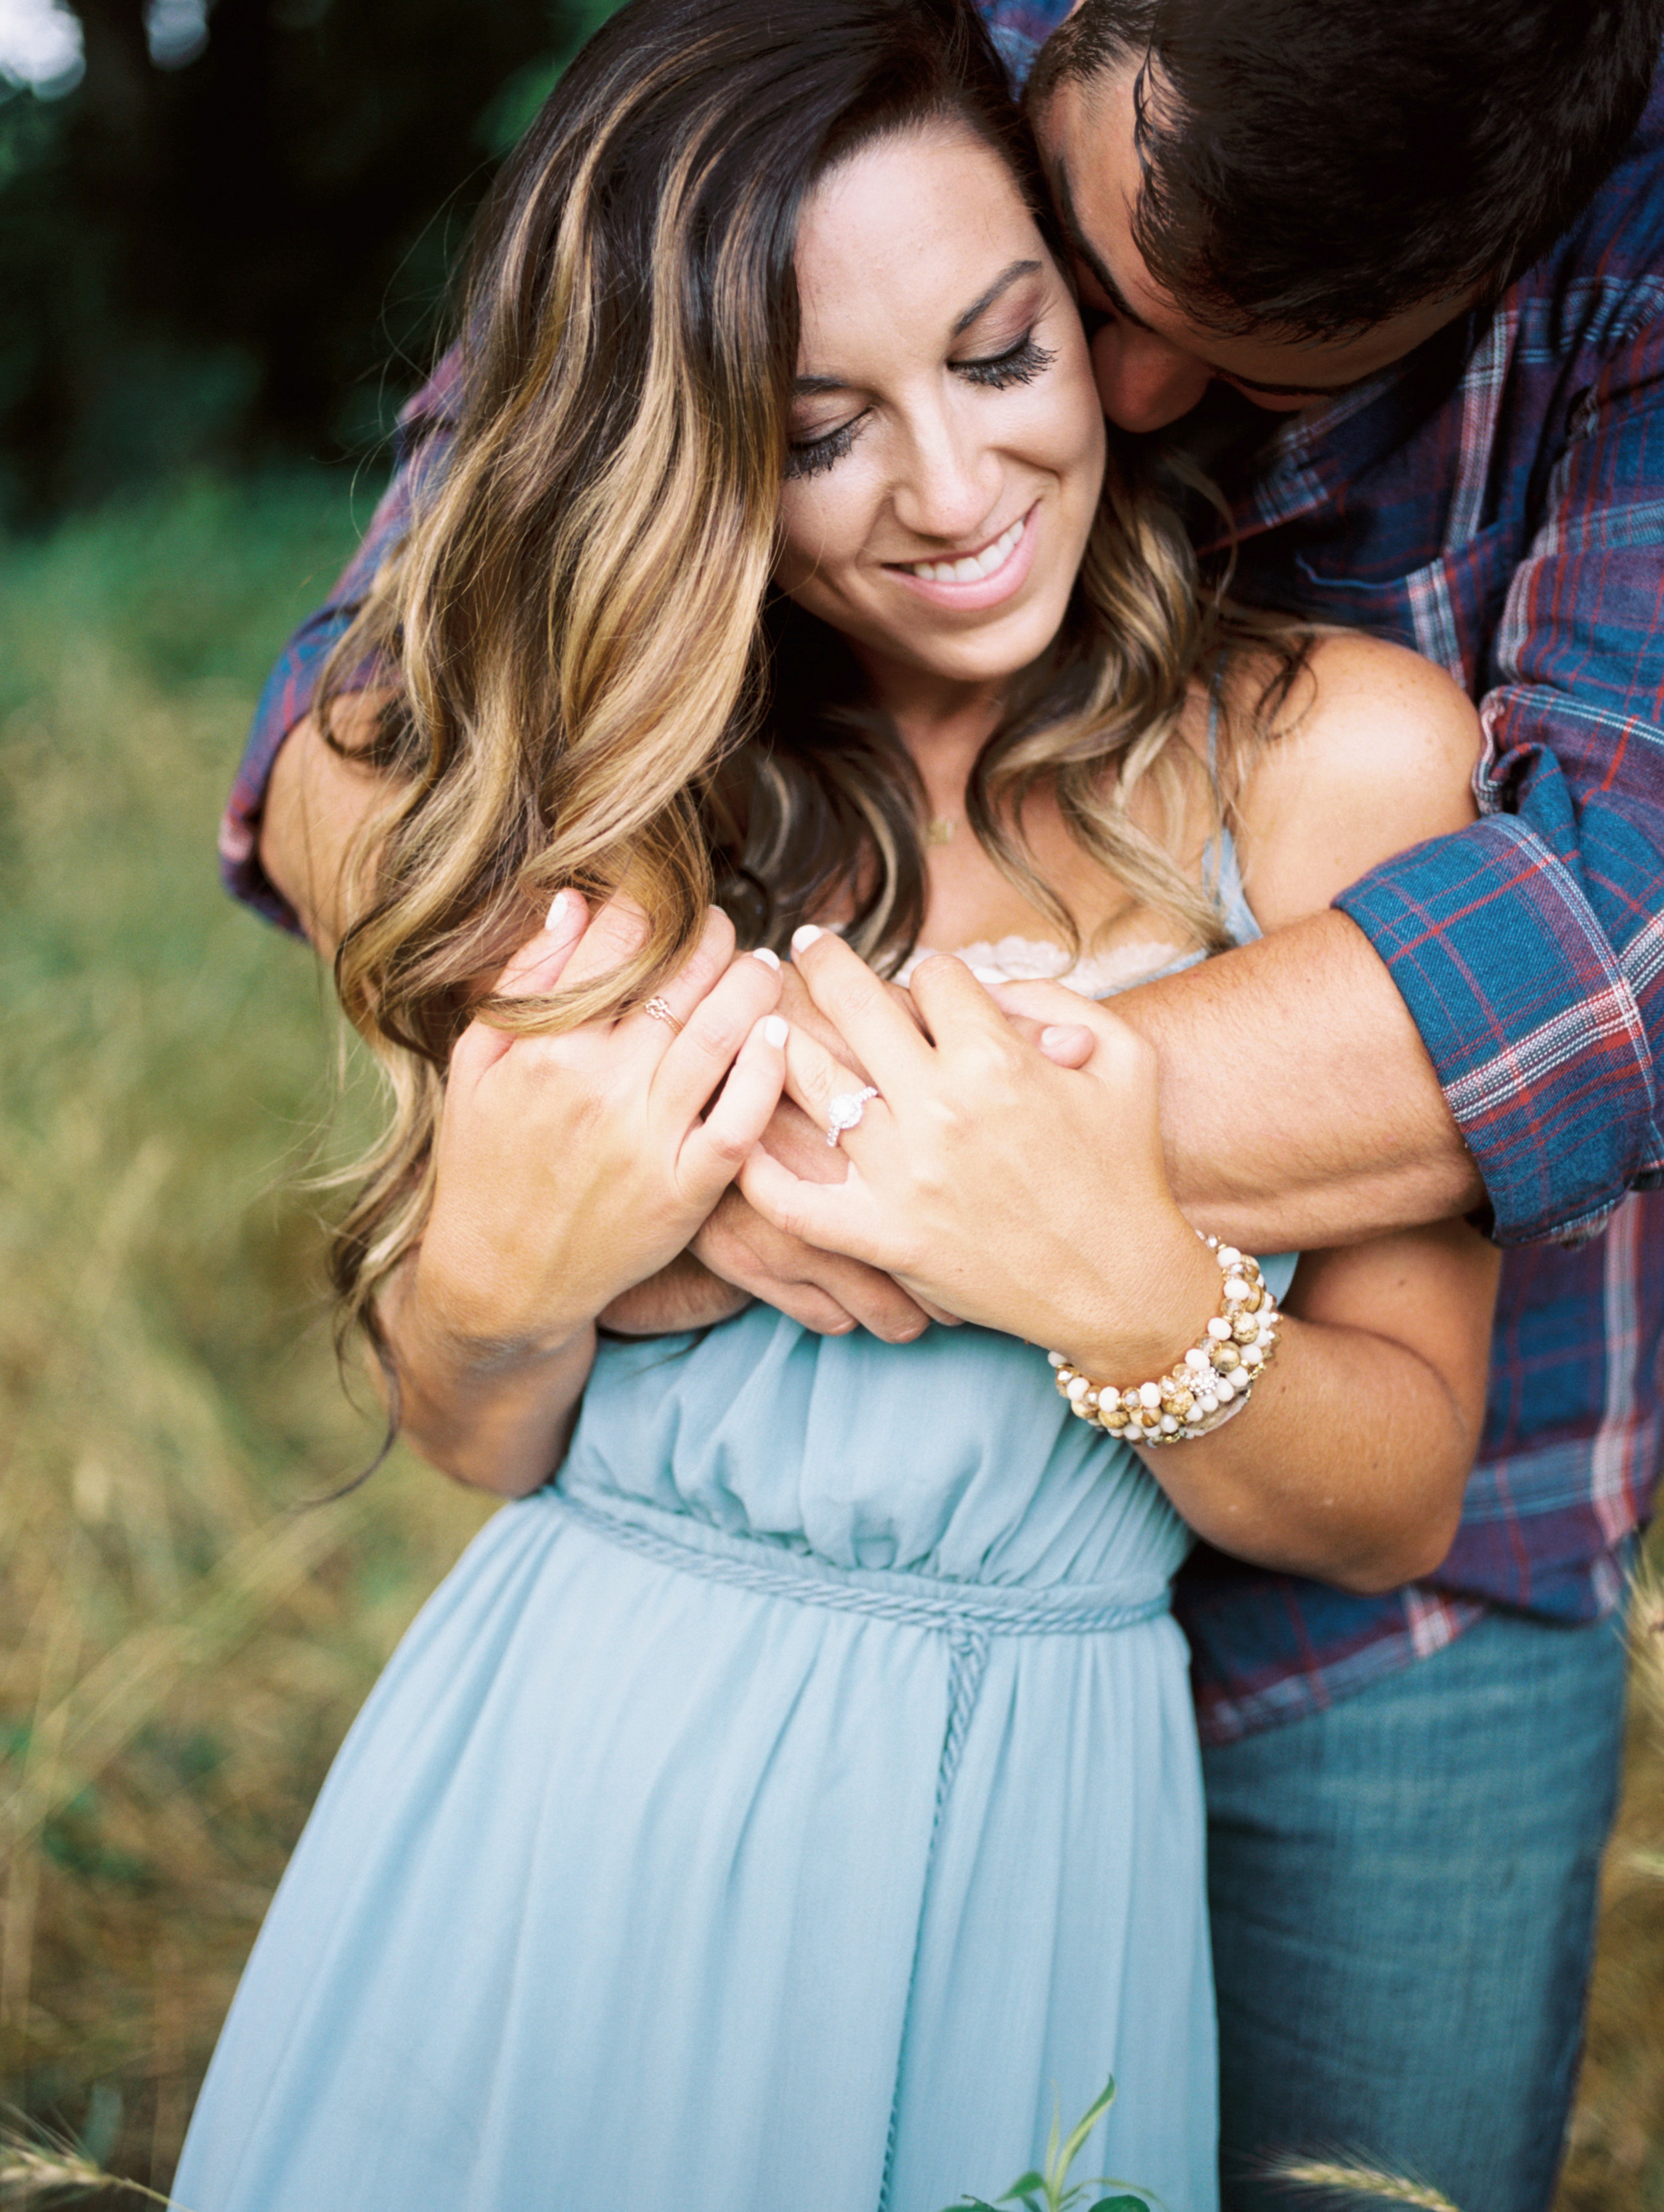 Brittany_Wes_Farm_Engagement_Abigail_Malone_Photography-146.jpg